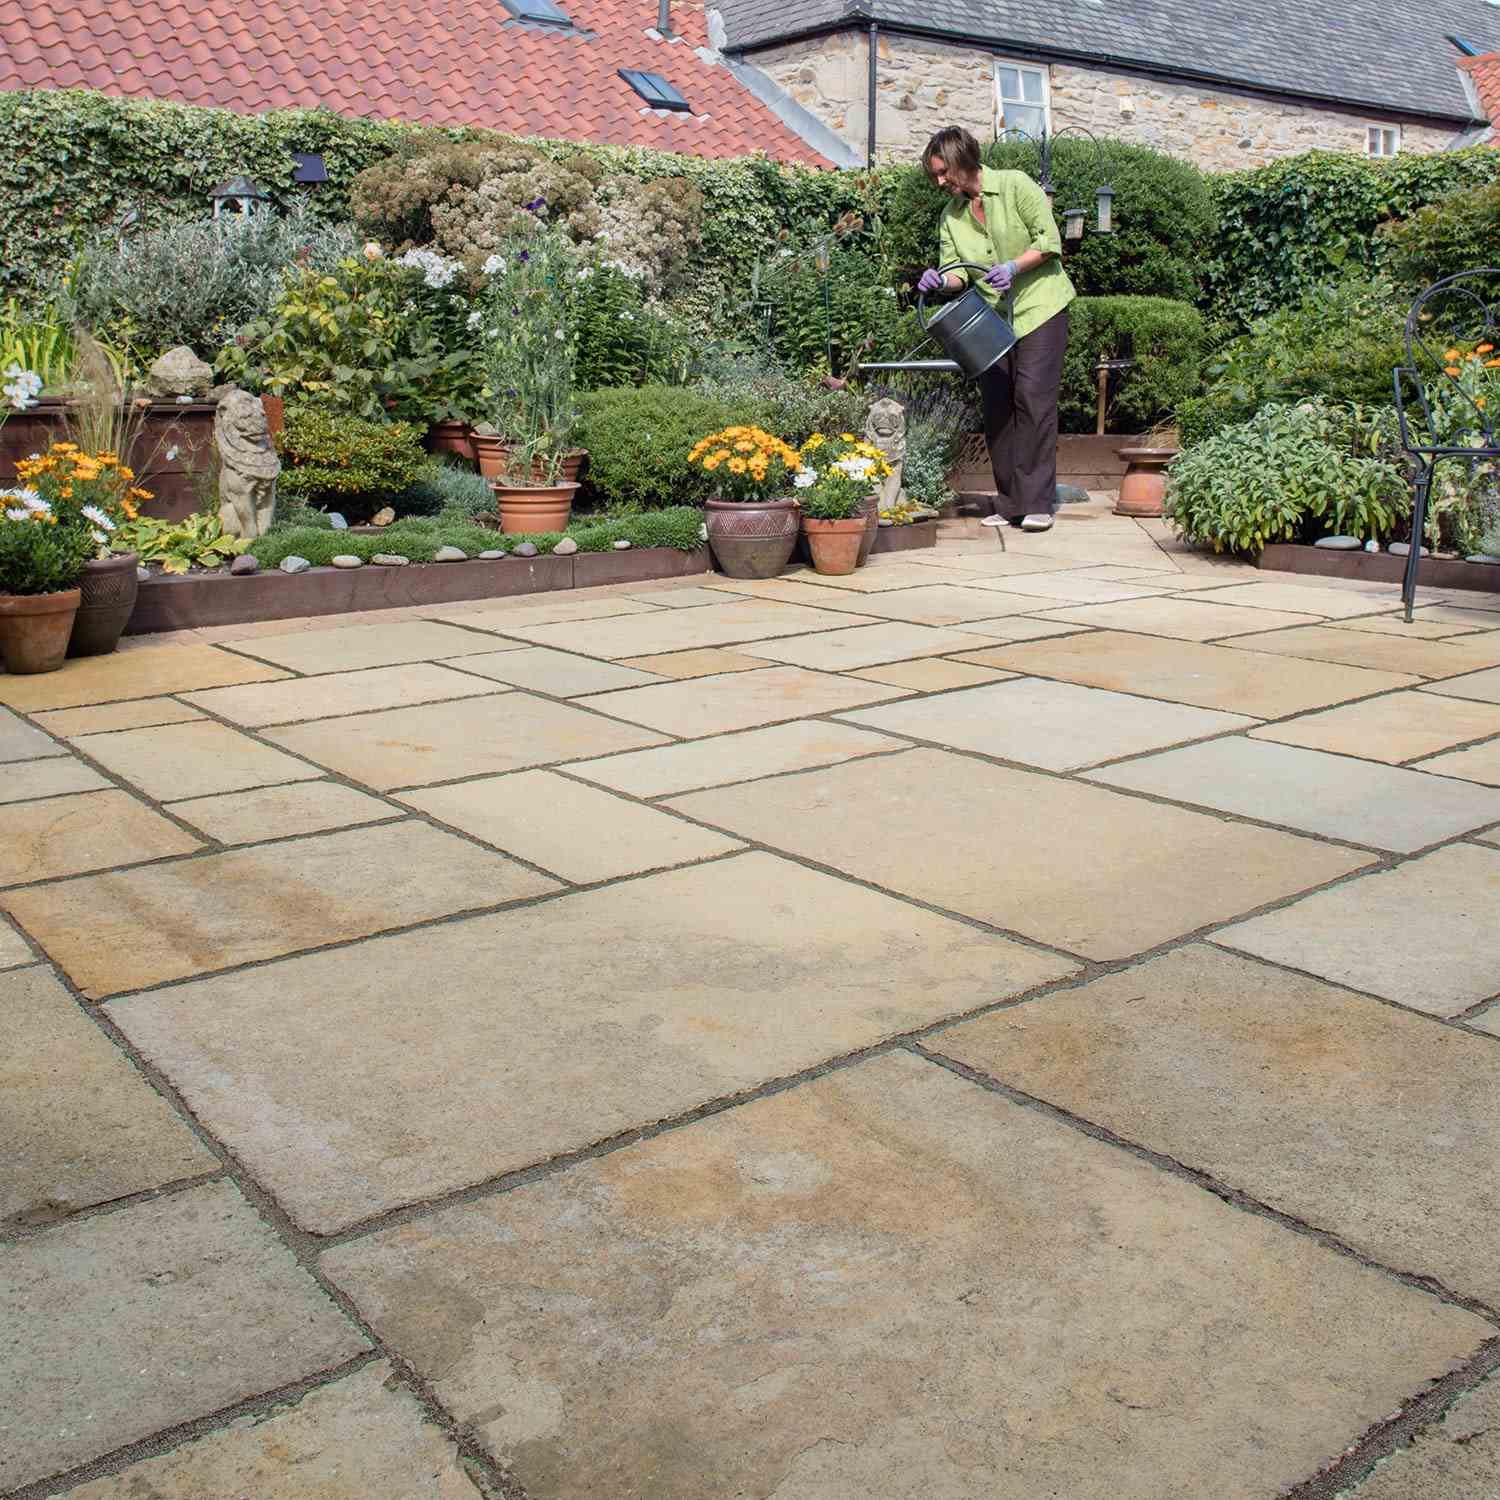 Fairstone limestone aluri riven garden paving marshalls - What is lime used for in gardening ...